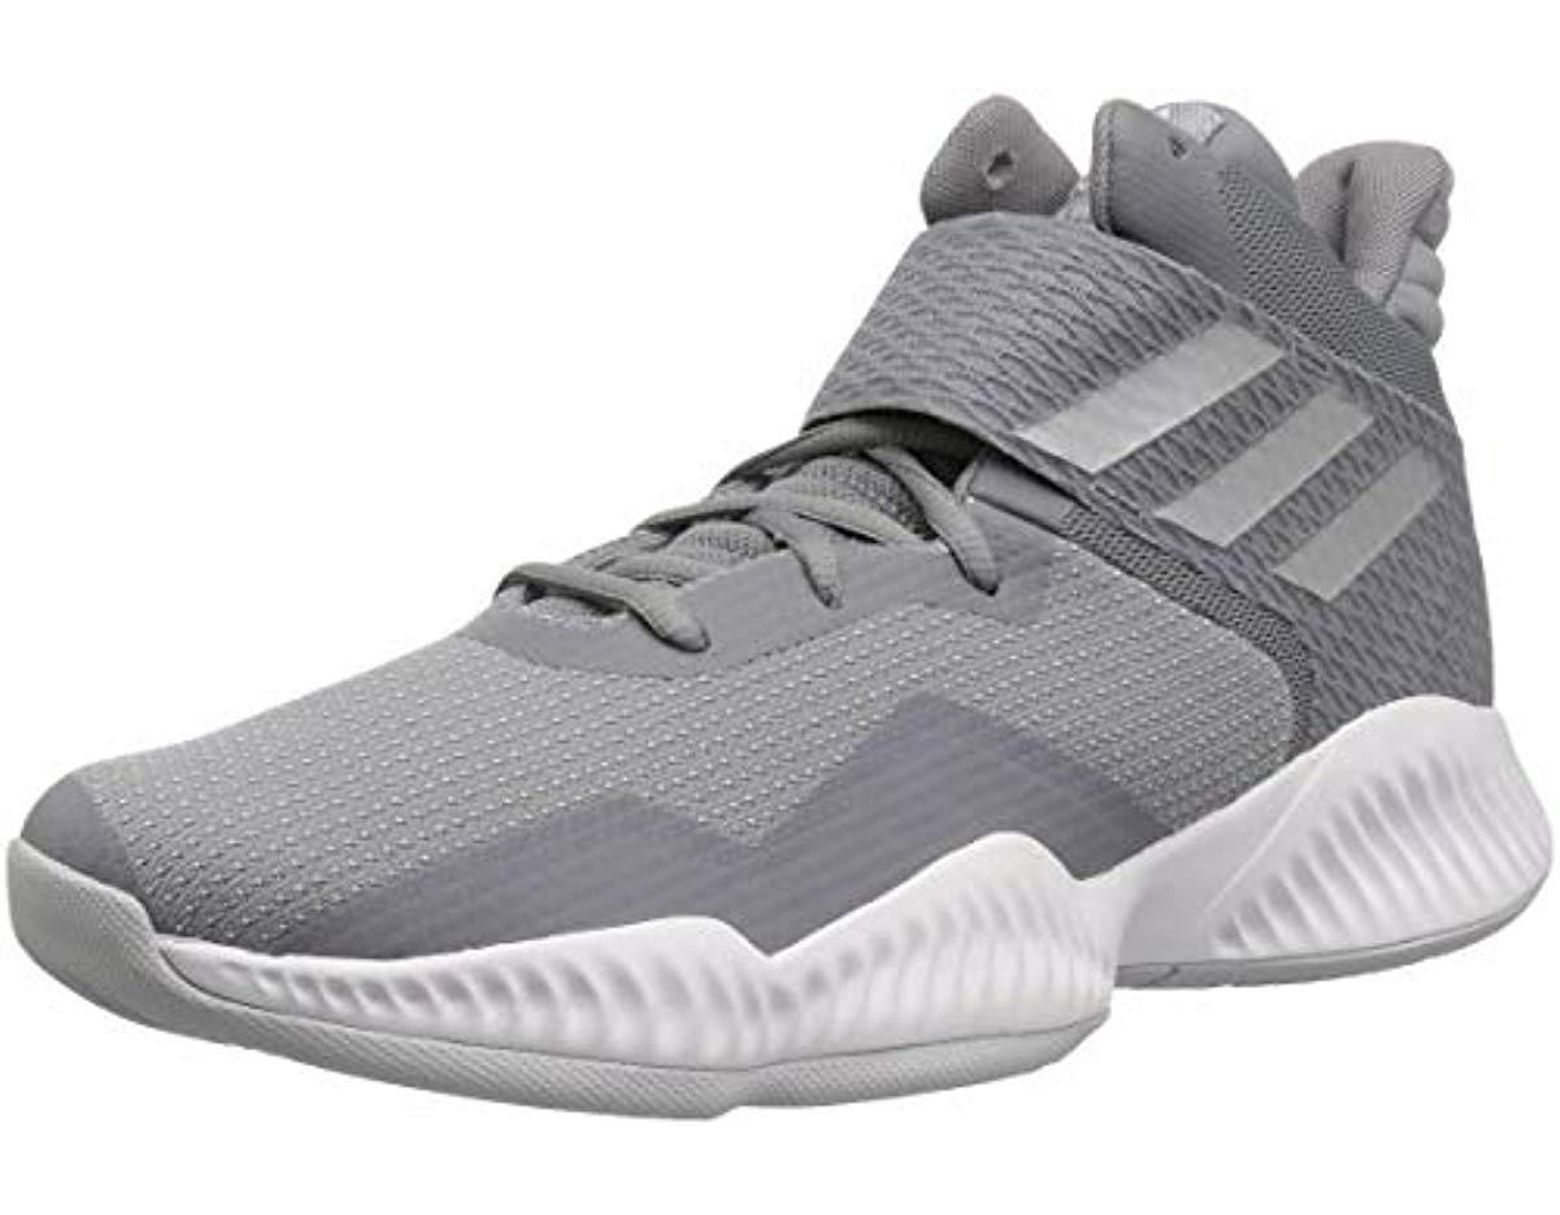 834d06e3d2c6 adidas Explosive Bounce 2018 Basketball Shoe in Gray for Men - Lyst